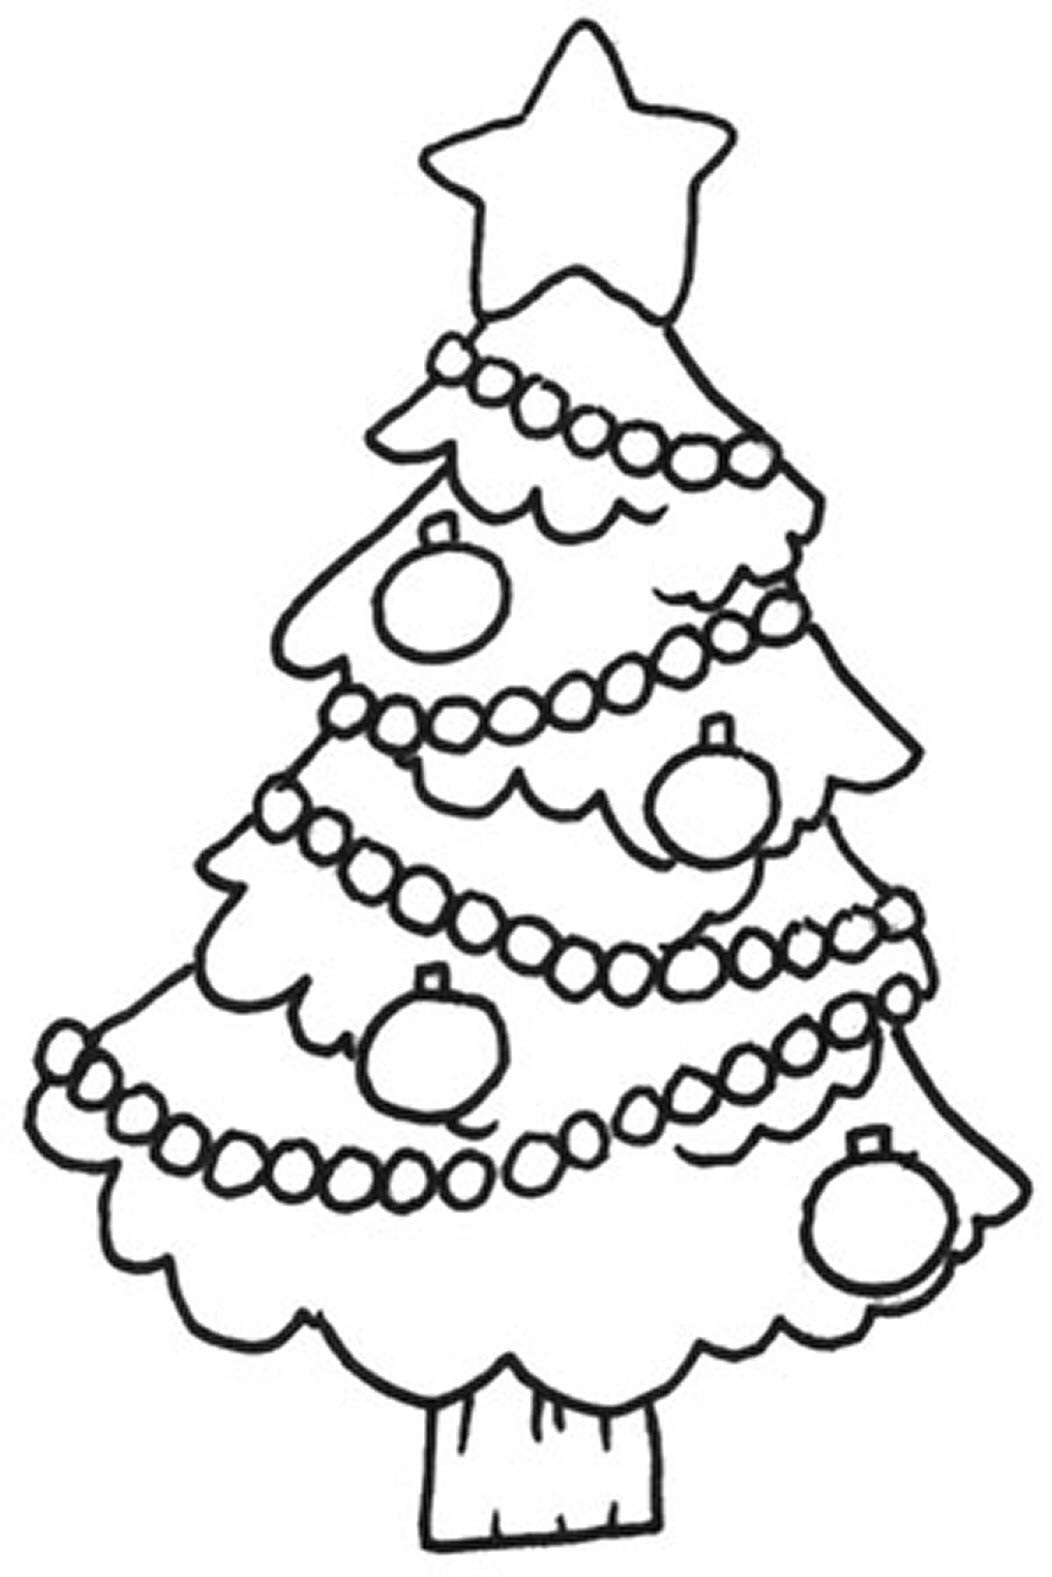 This is a picture of Printable Christmas Tree Coloring Pages in downloadable